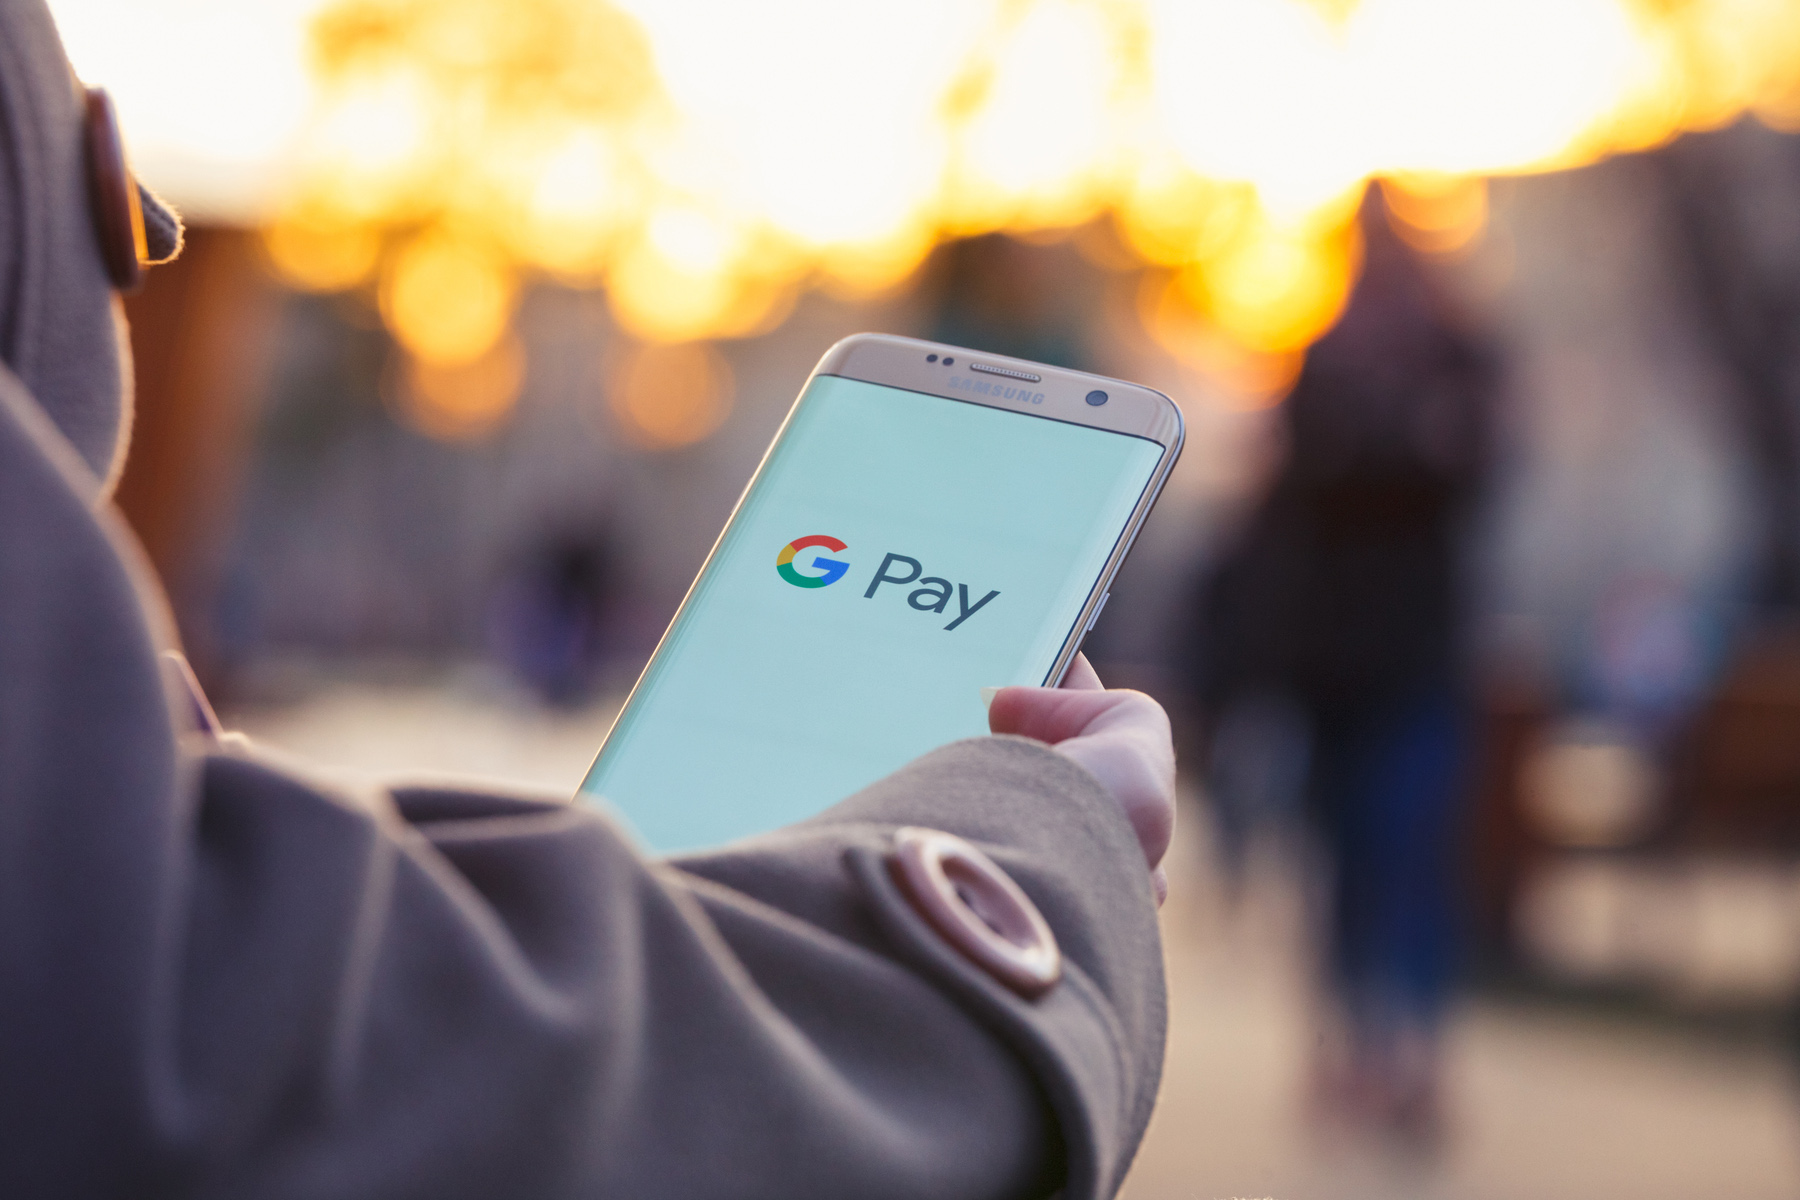 Google Pay on a mobile phone